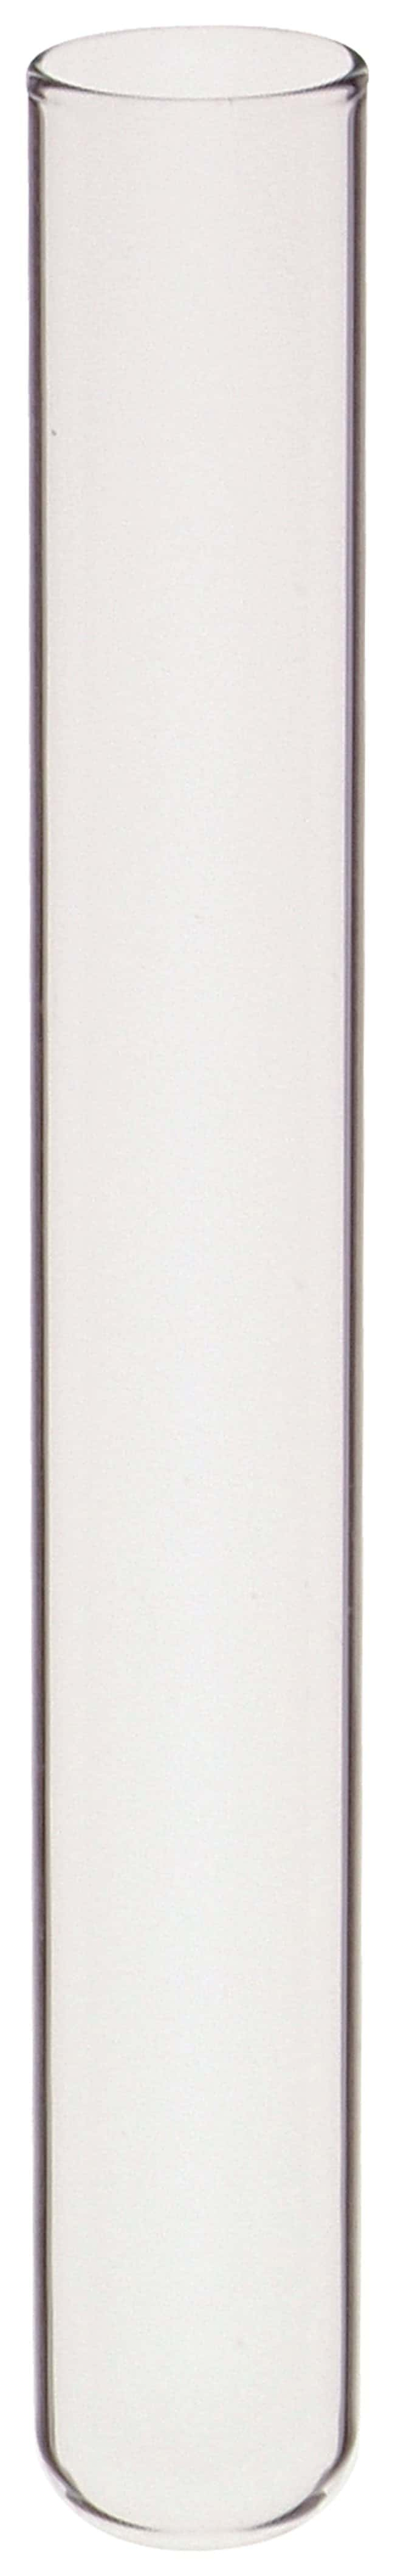 DWK Life Sciences Kimble™ Plain Disposable Borosilicate Glass Tubes